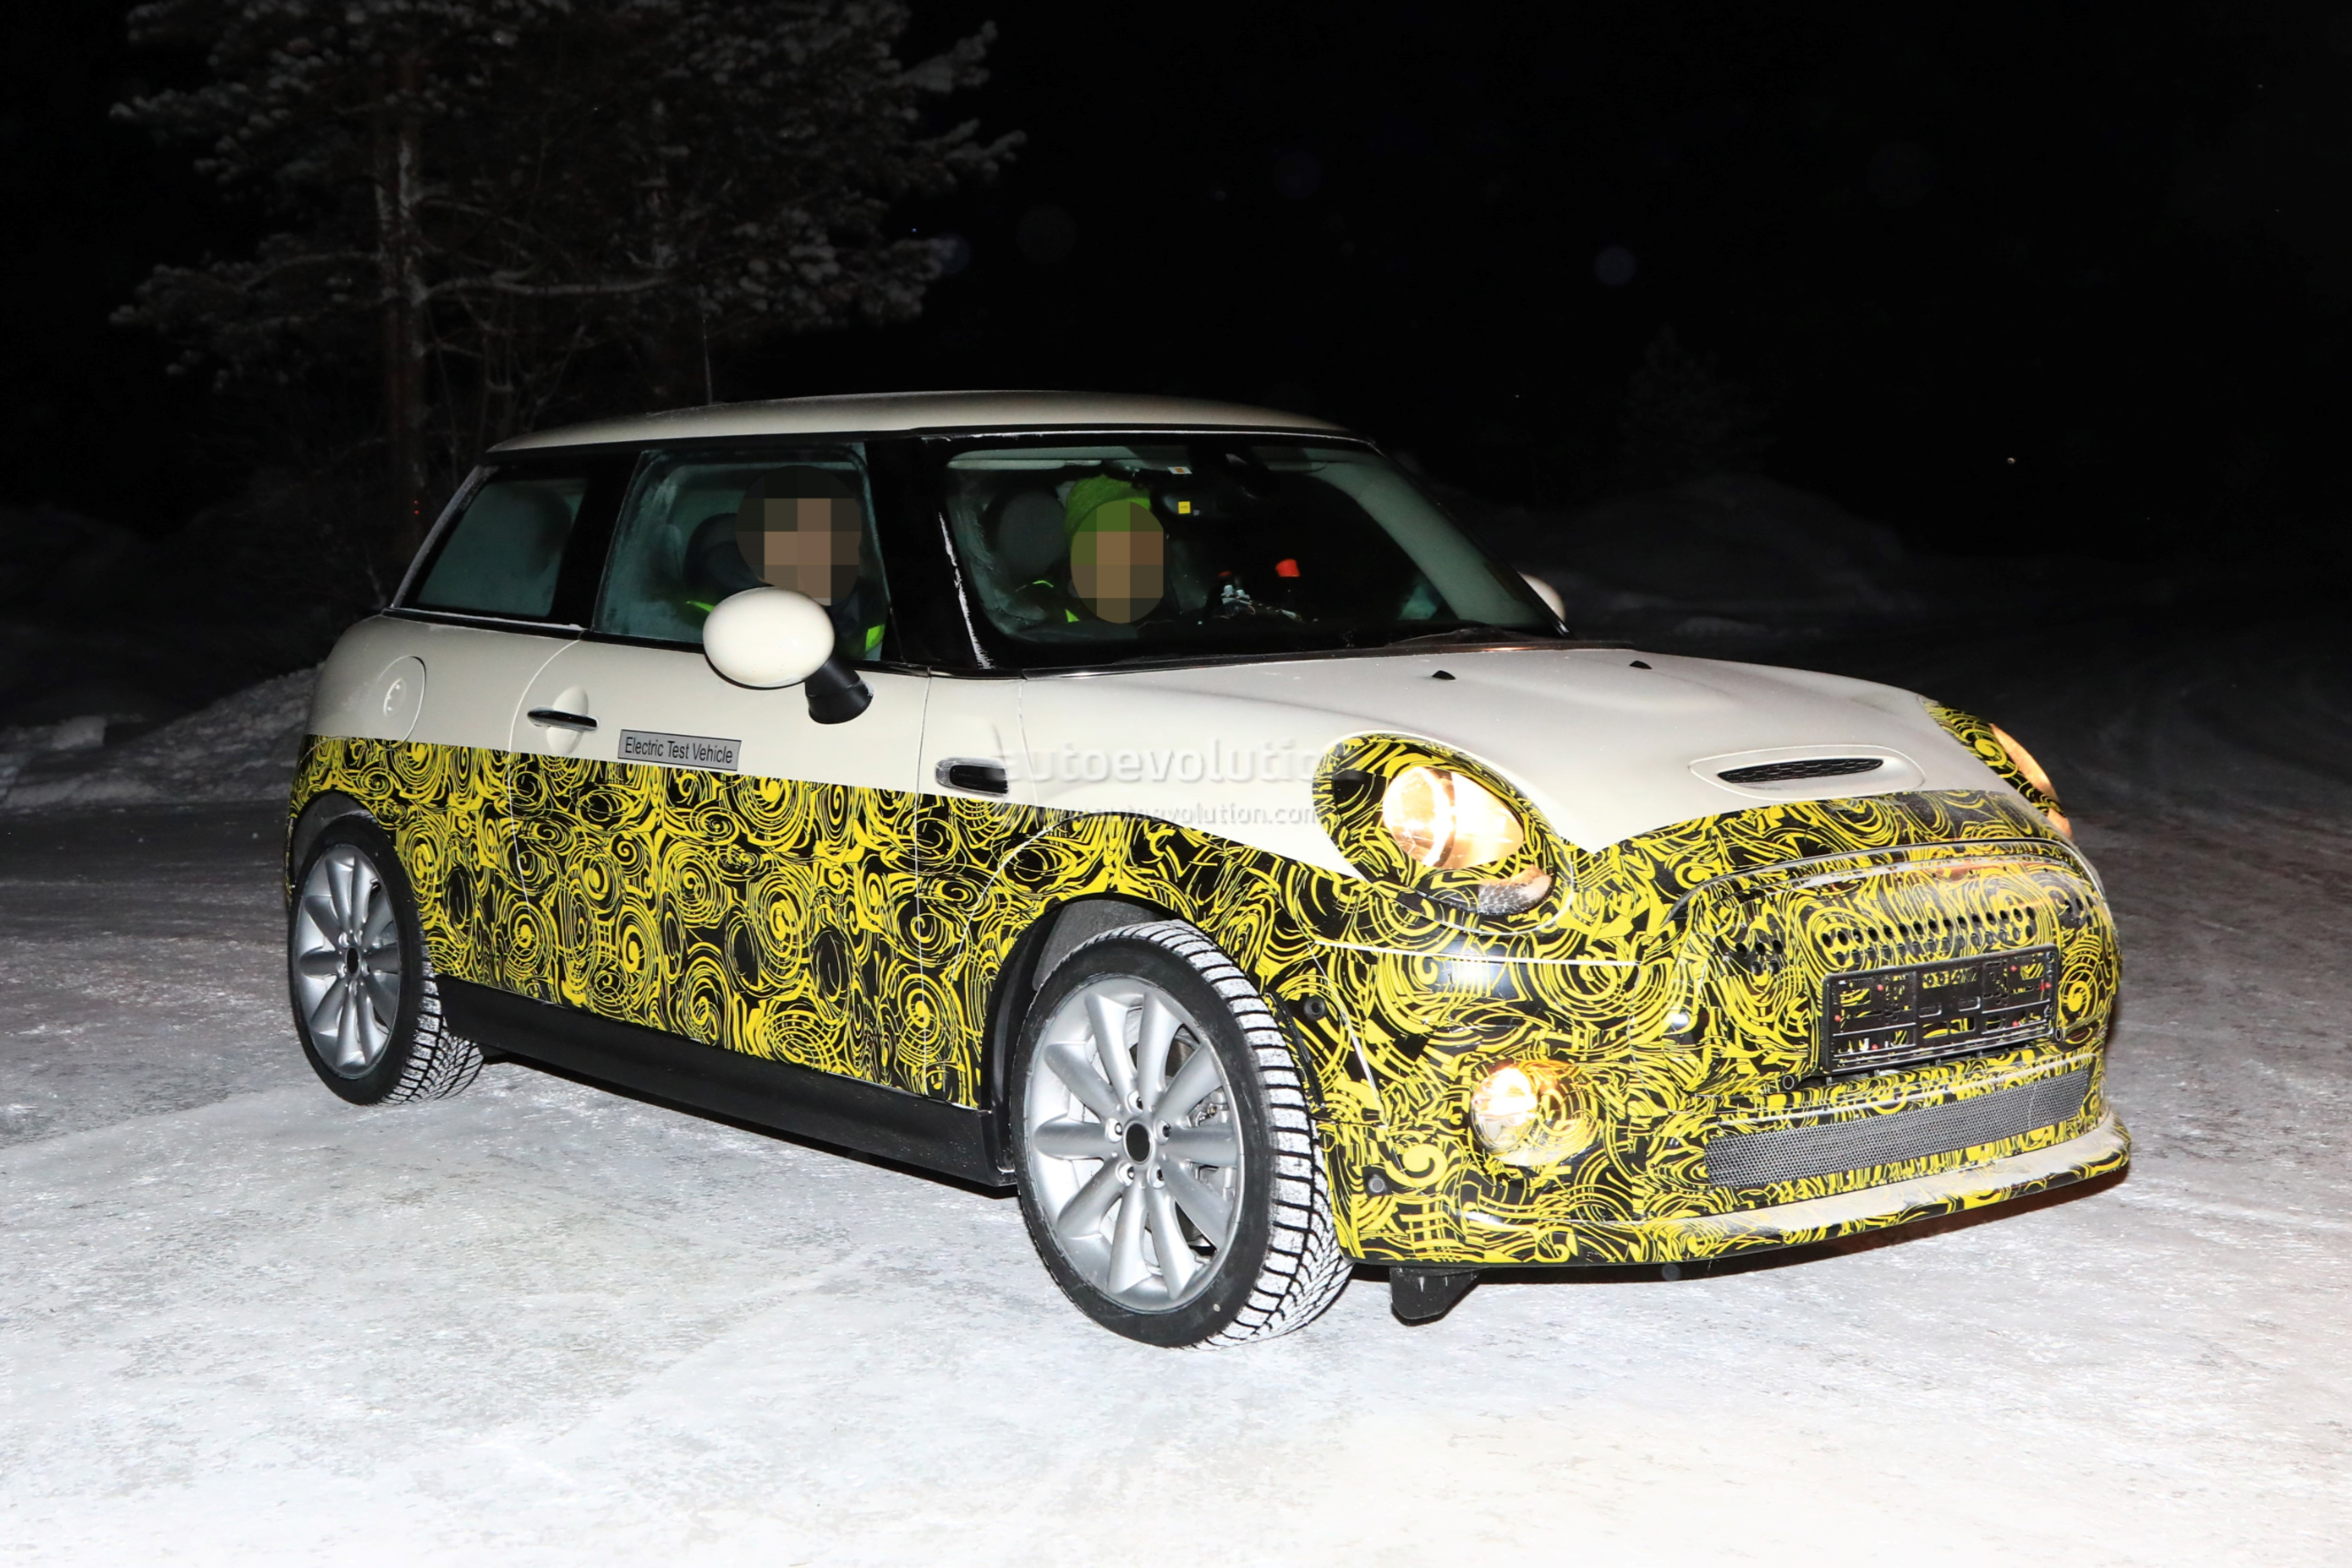 2019 Mini Cooper E Electric Vehicle Spied Testing At 30 Degrees